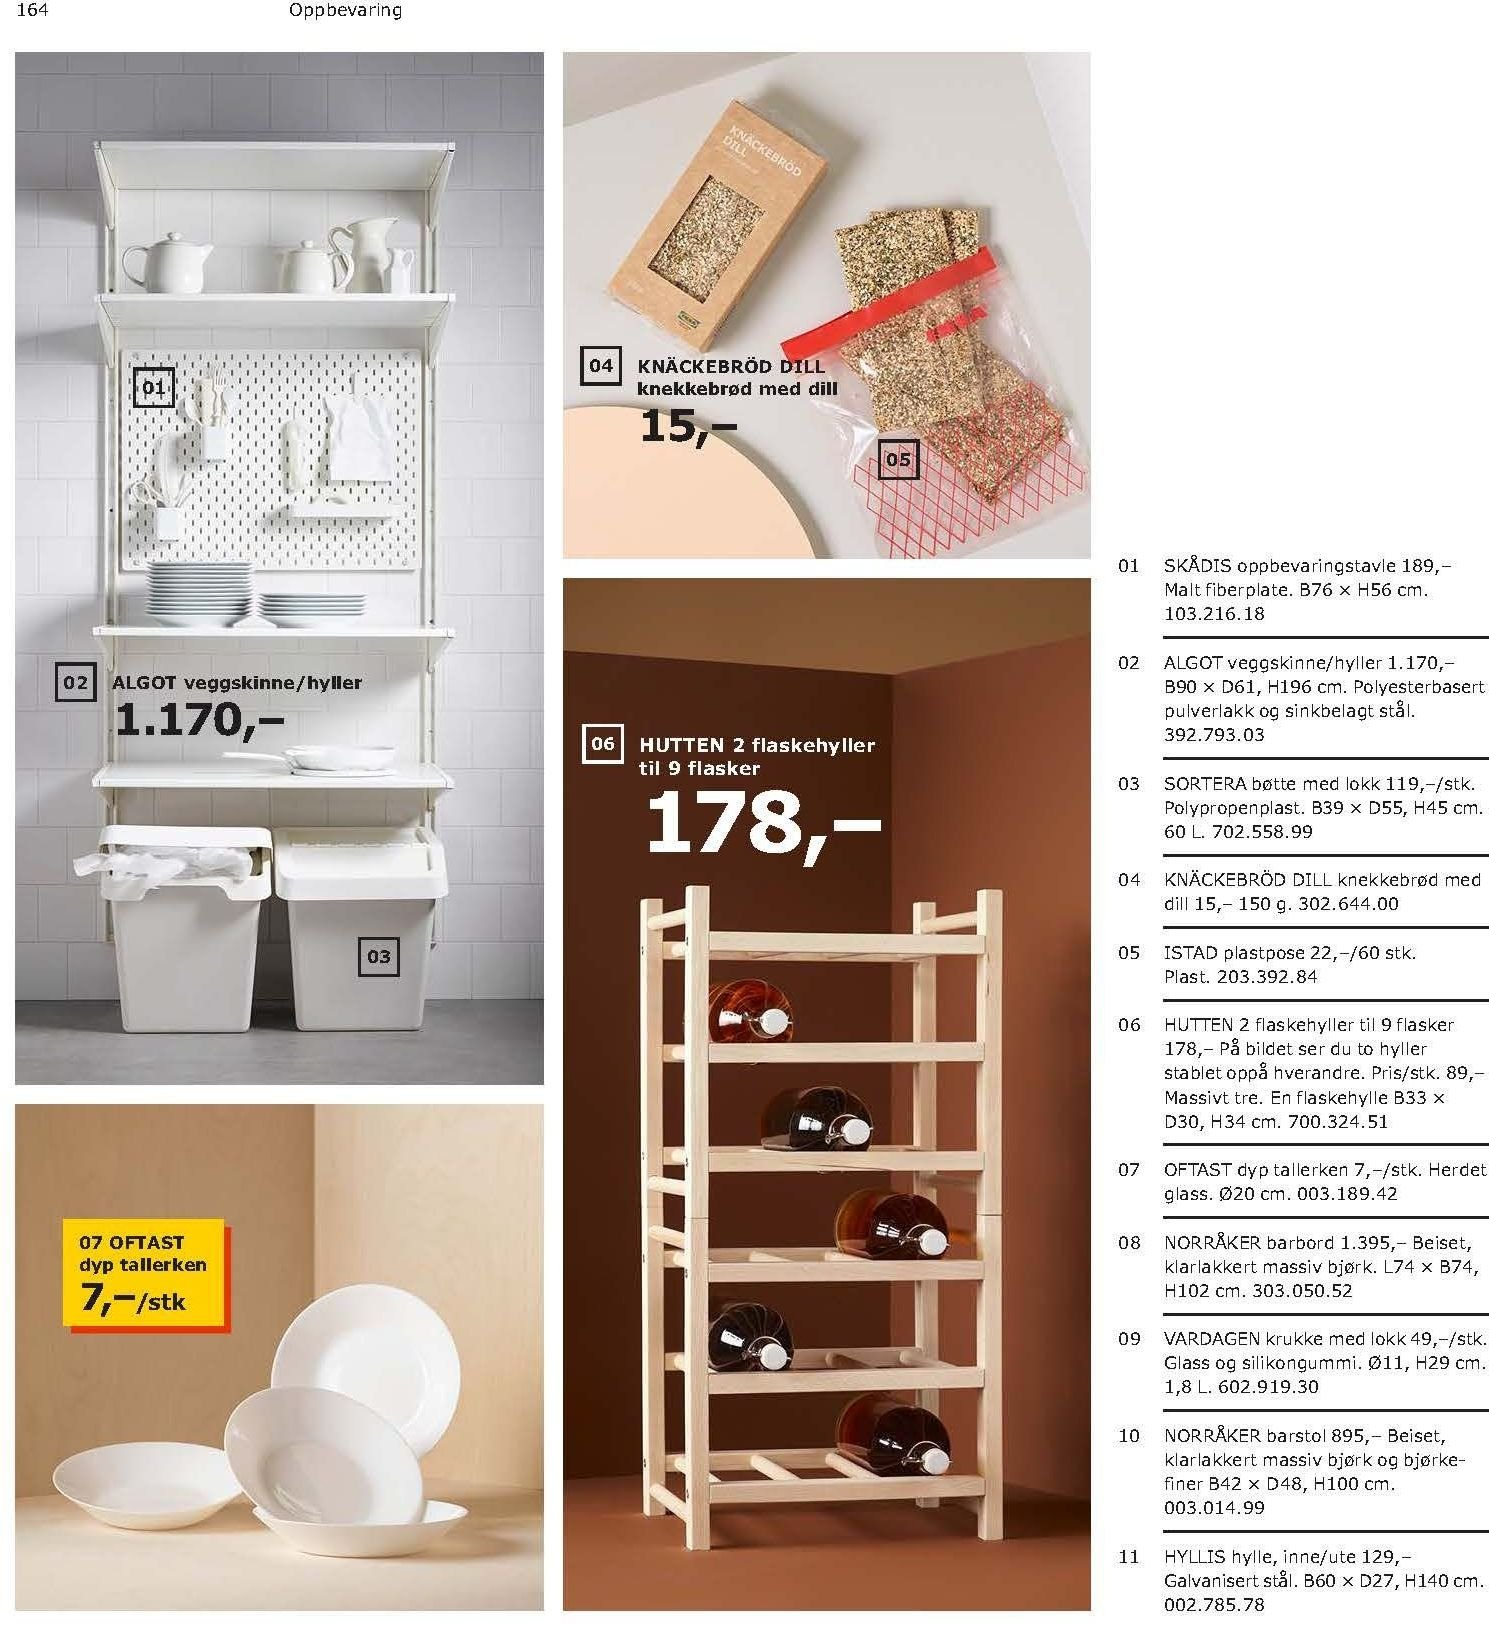 Kundeavis IKEA - 21.08.2018 - 11.08.2019. Side 164.